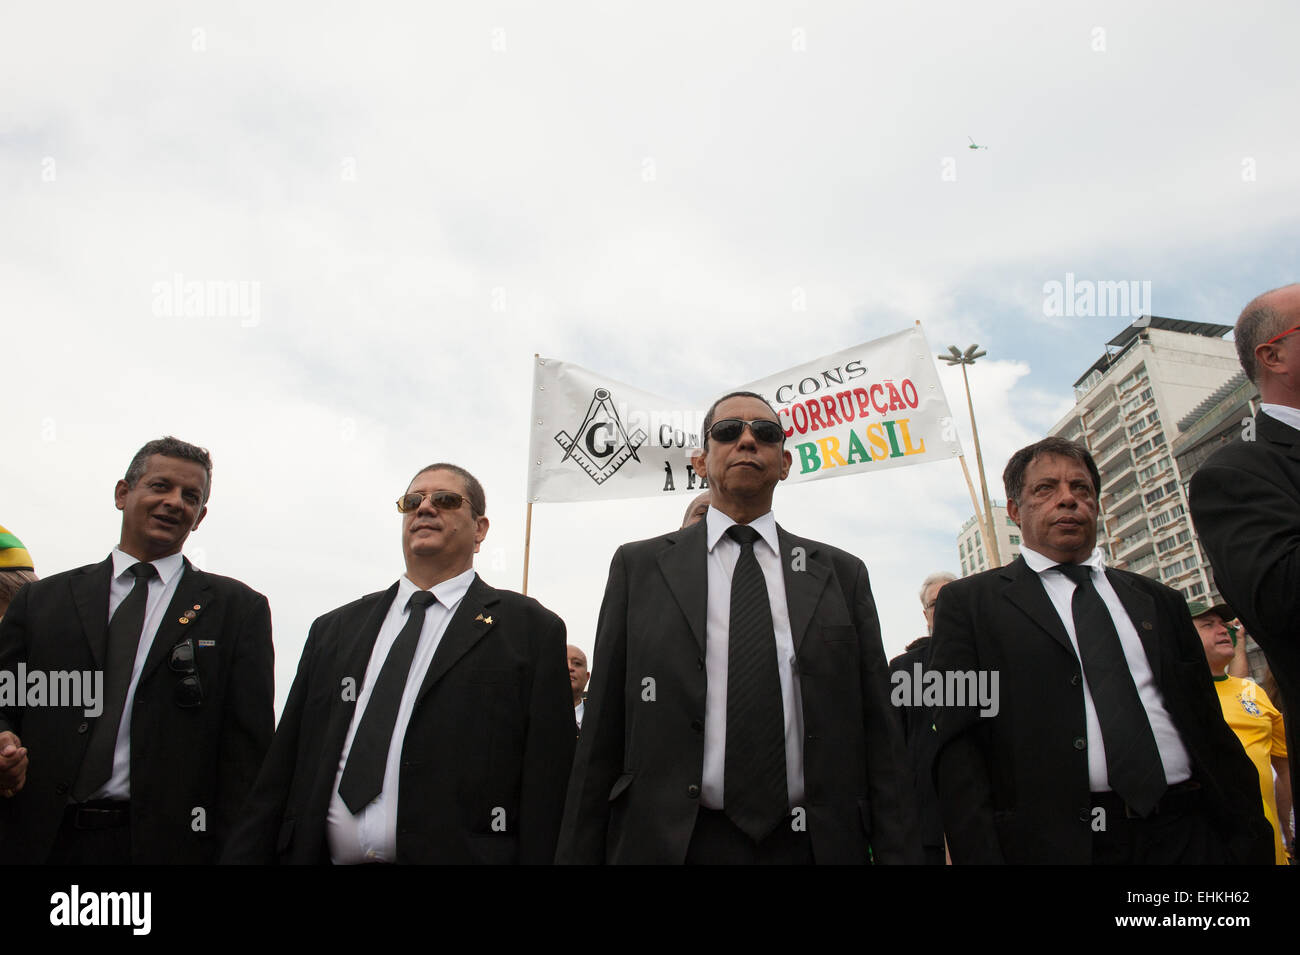 Freemasons from a local lodge march in protest against the corruption of the government of Dilma Rousseff. Rio de - Stock Image